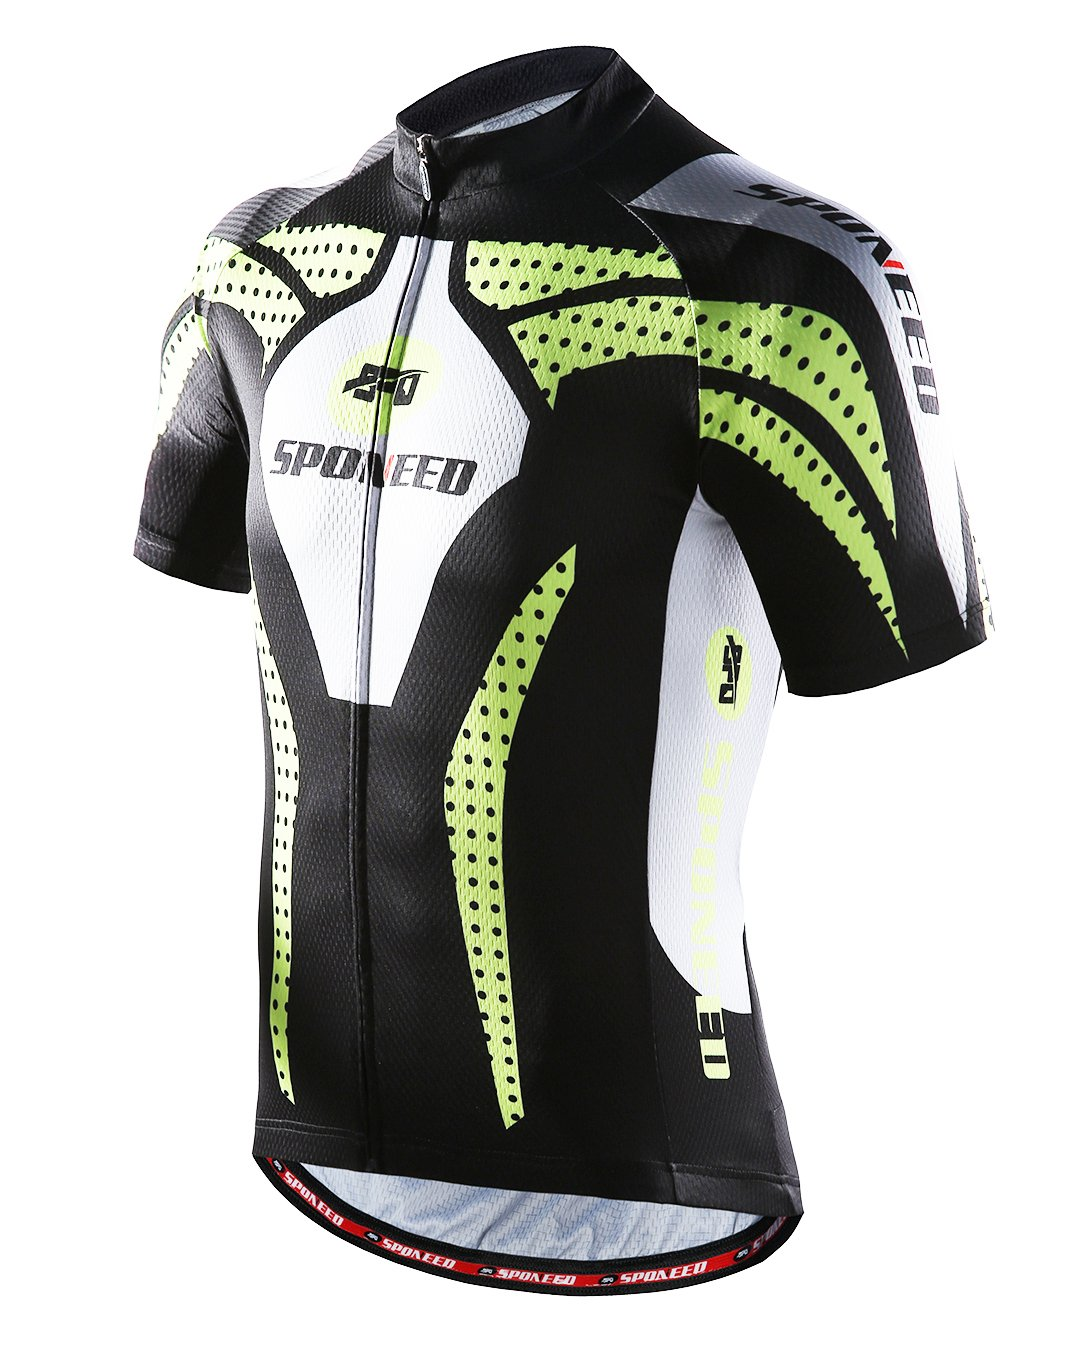 sponeed Men's Bicycle Jersey Polyester and Lycra Shirt Cycling Top Size Asian M/US S Green